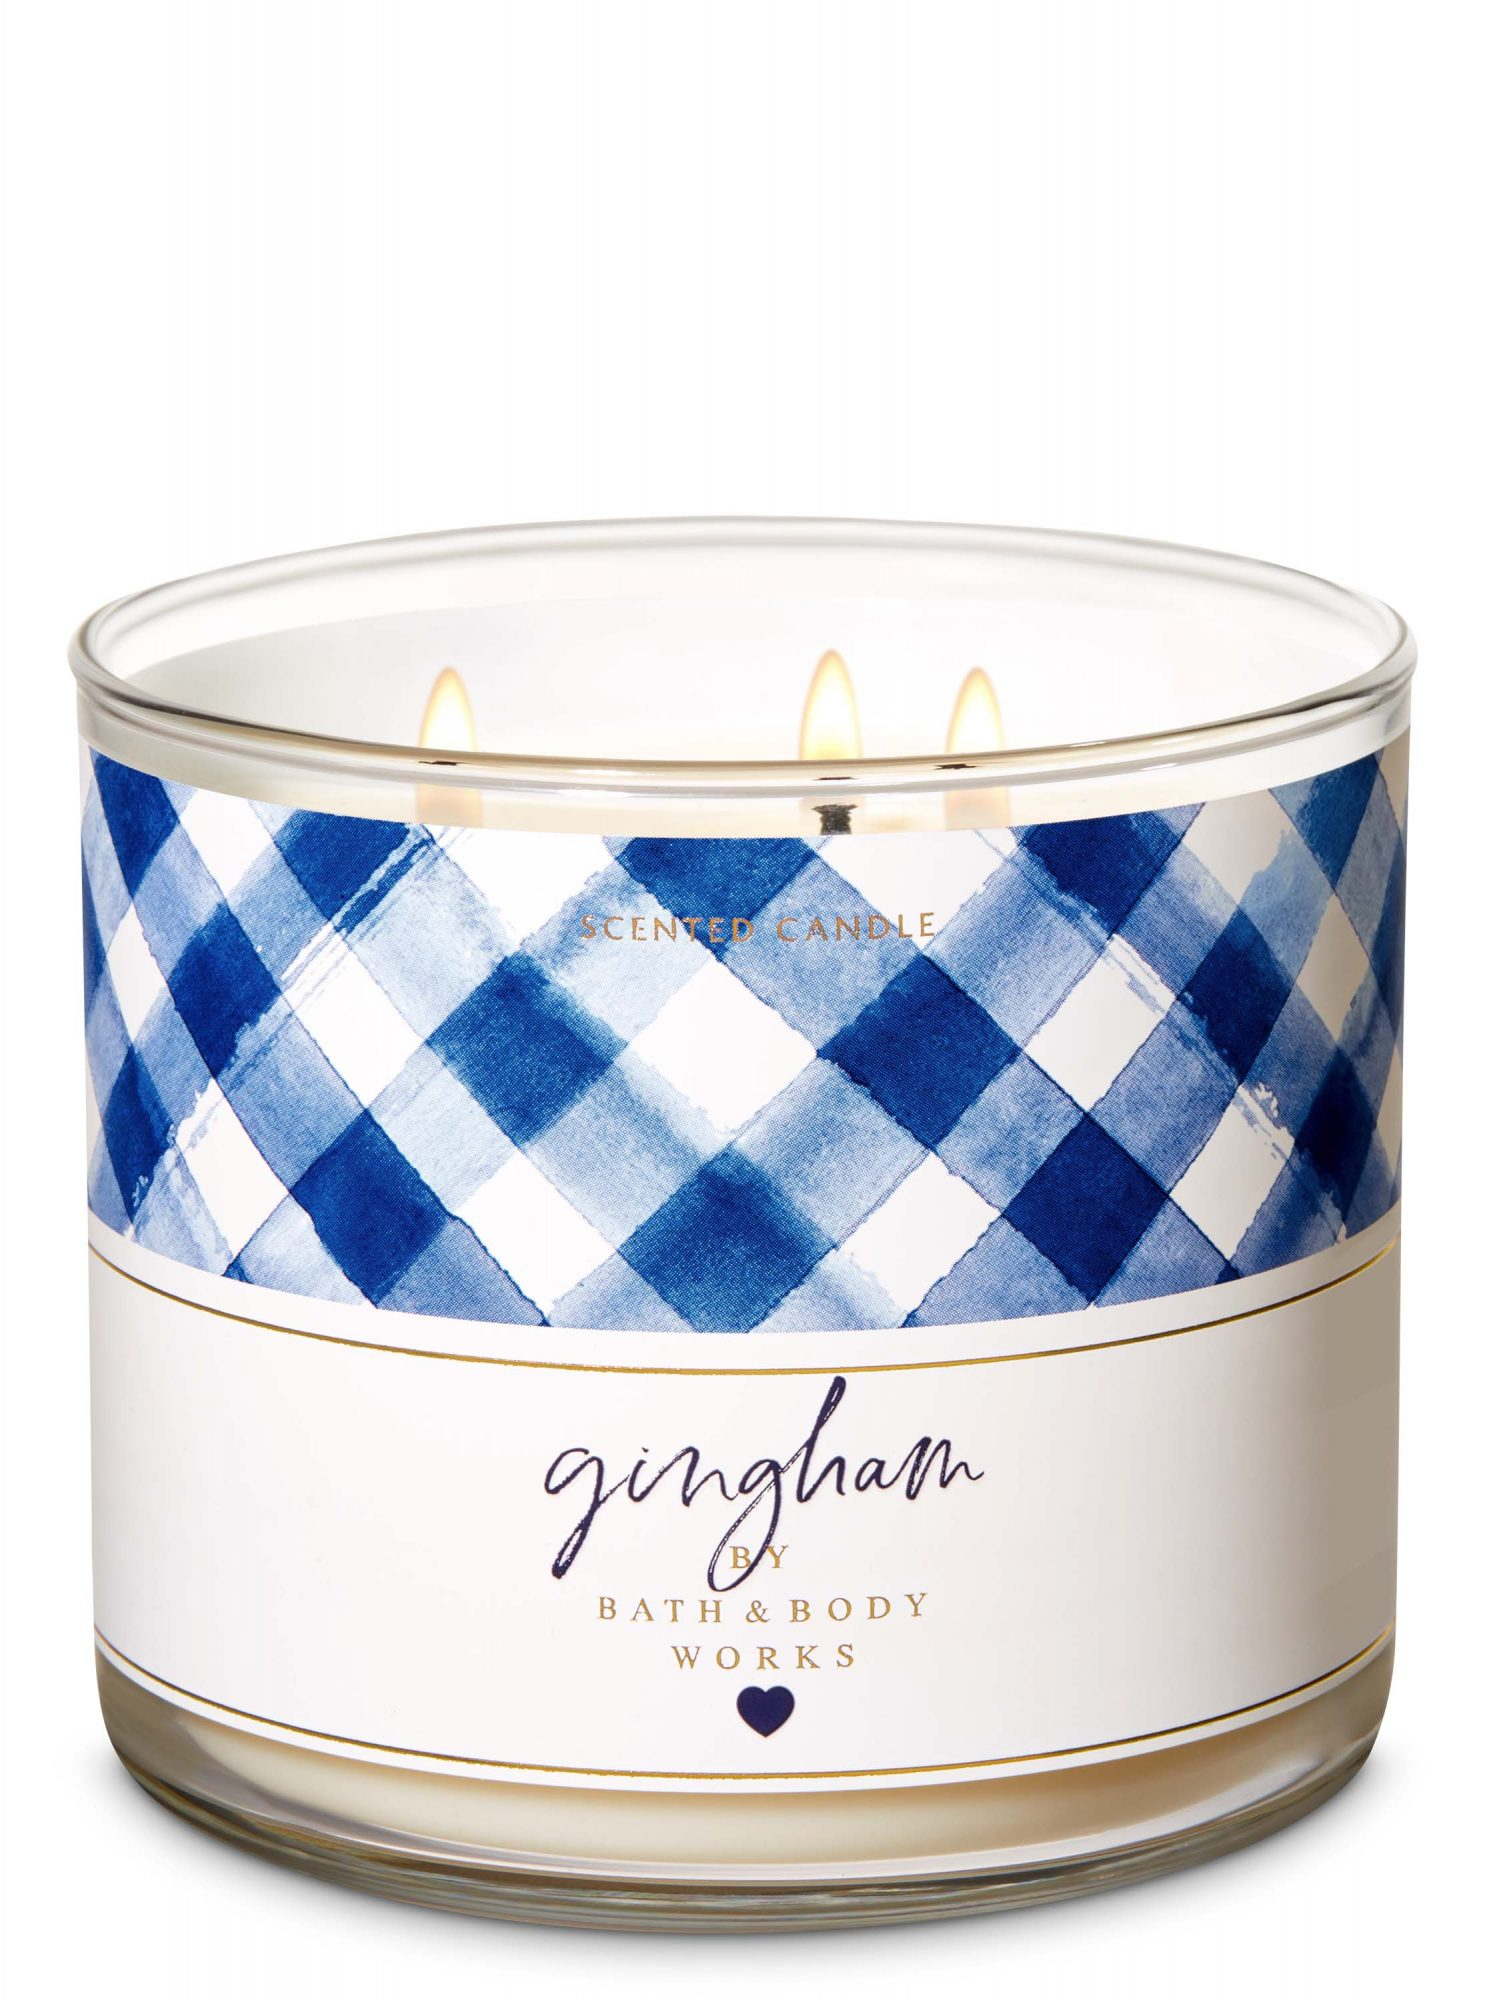 Bath and Body Works Gingham